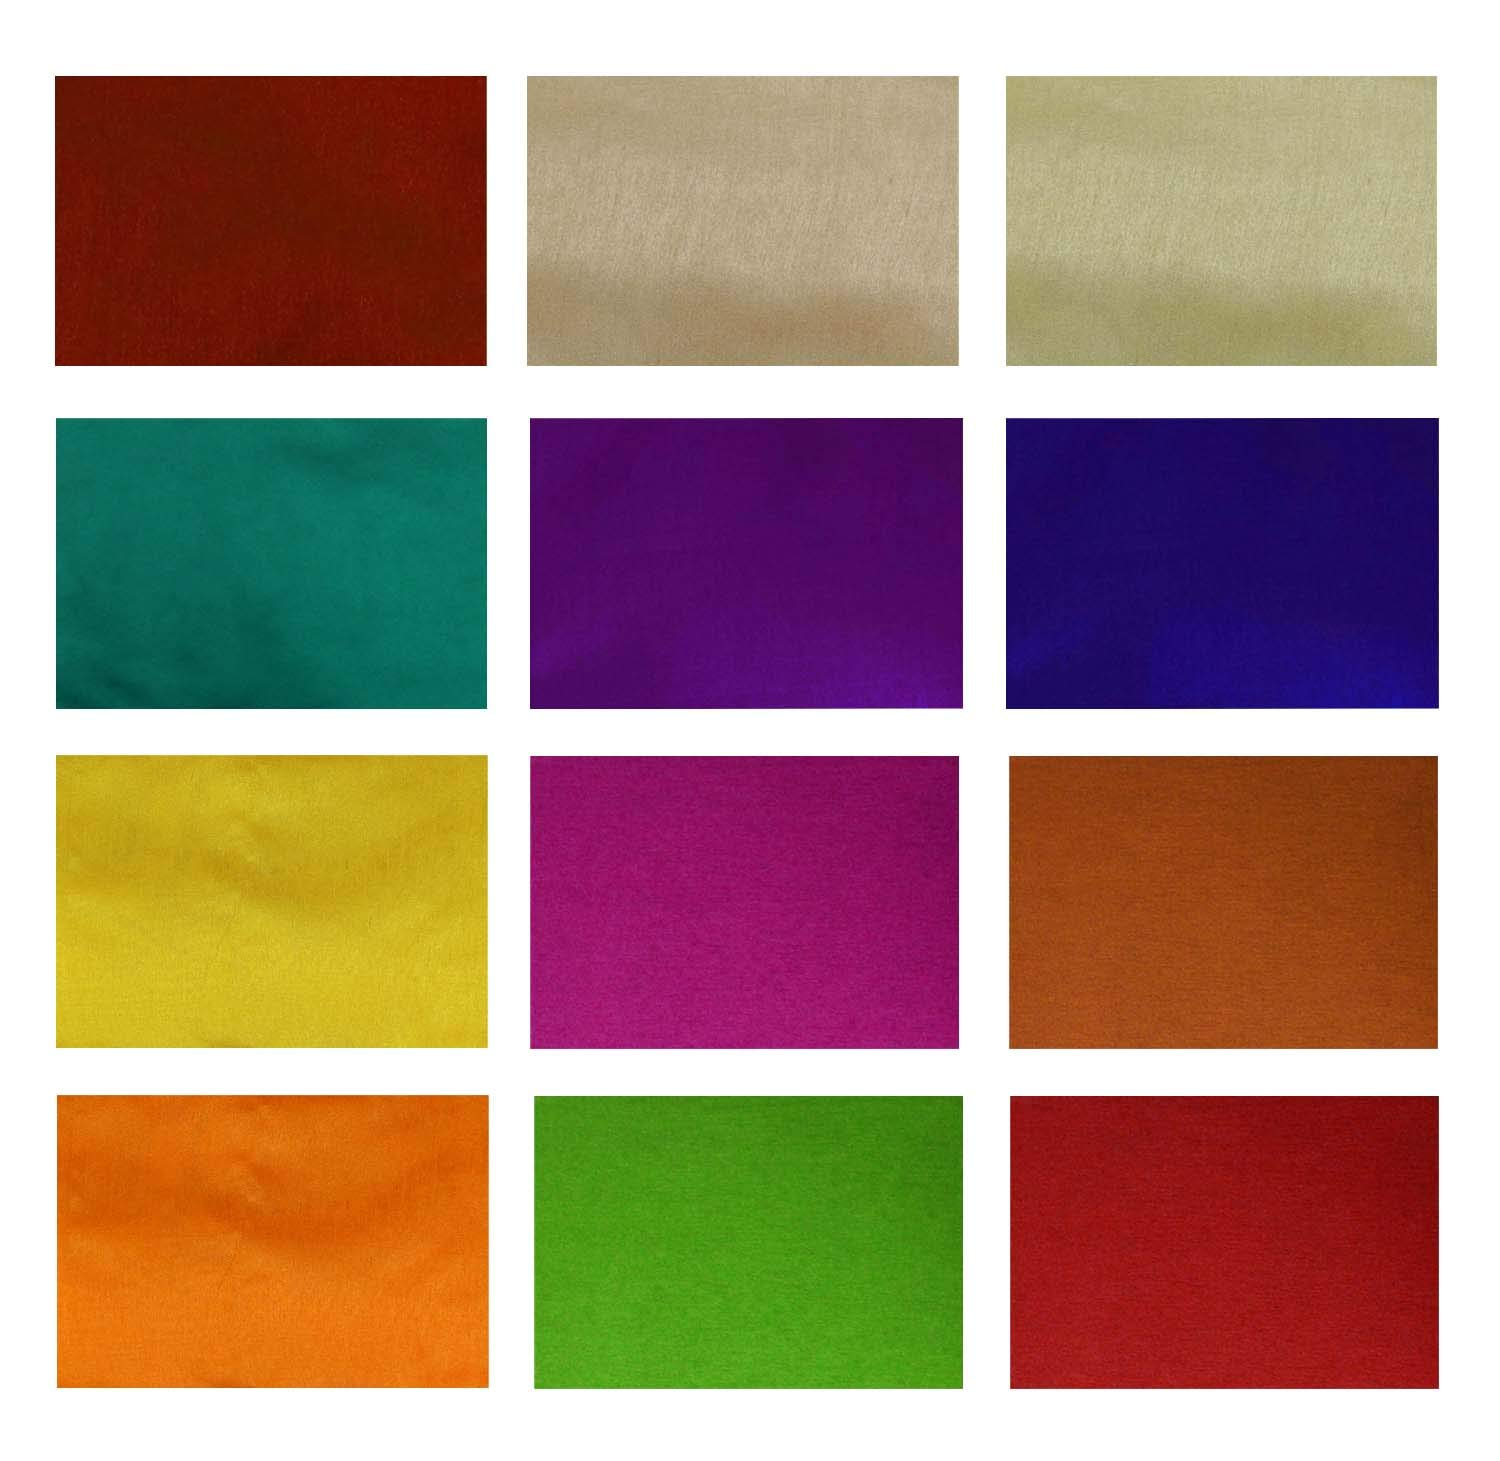 Poly Dupion Silk Fabric Swatches Squares Patchwork 10 Pcs DIY Sewing Scrap-Booking Quilting Pattern Art Craft 5 x 5